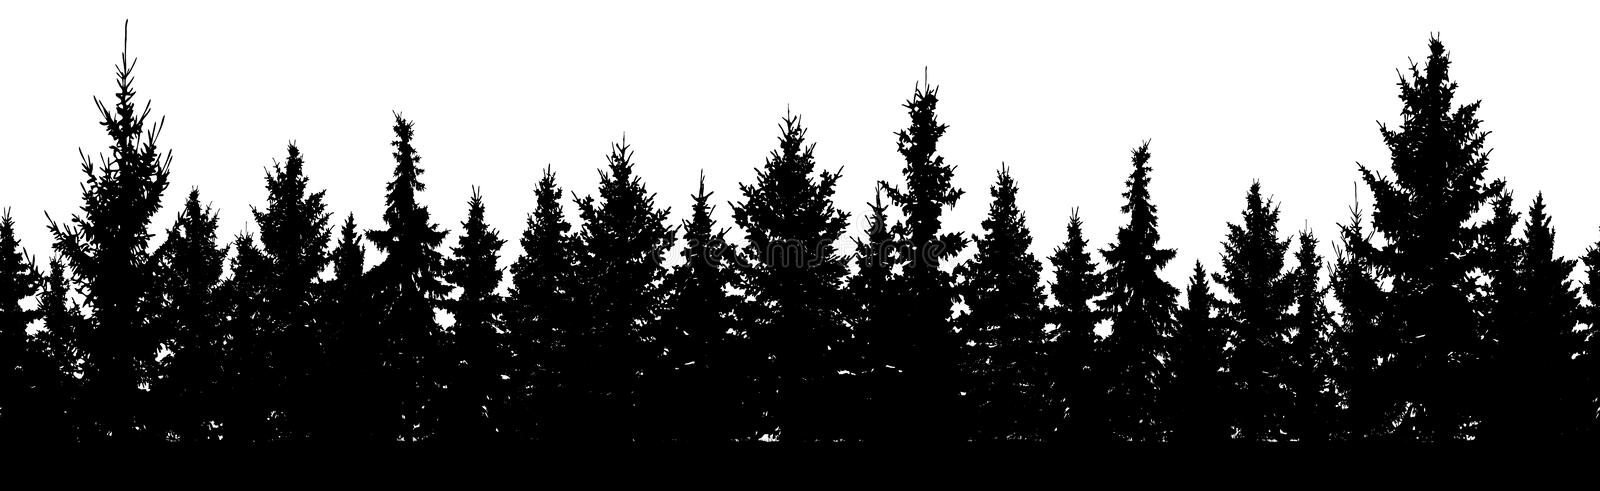 Seamless pattern. Forest of Christmas fir trees silhouette. Coniferous spruce stock illustration